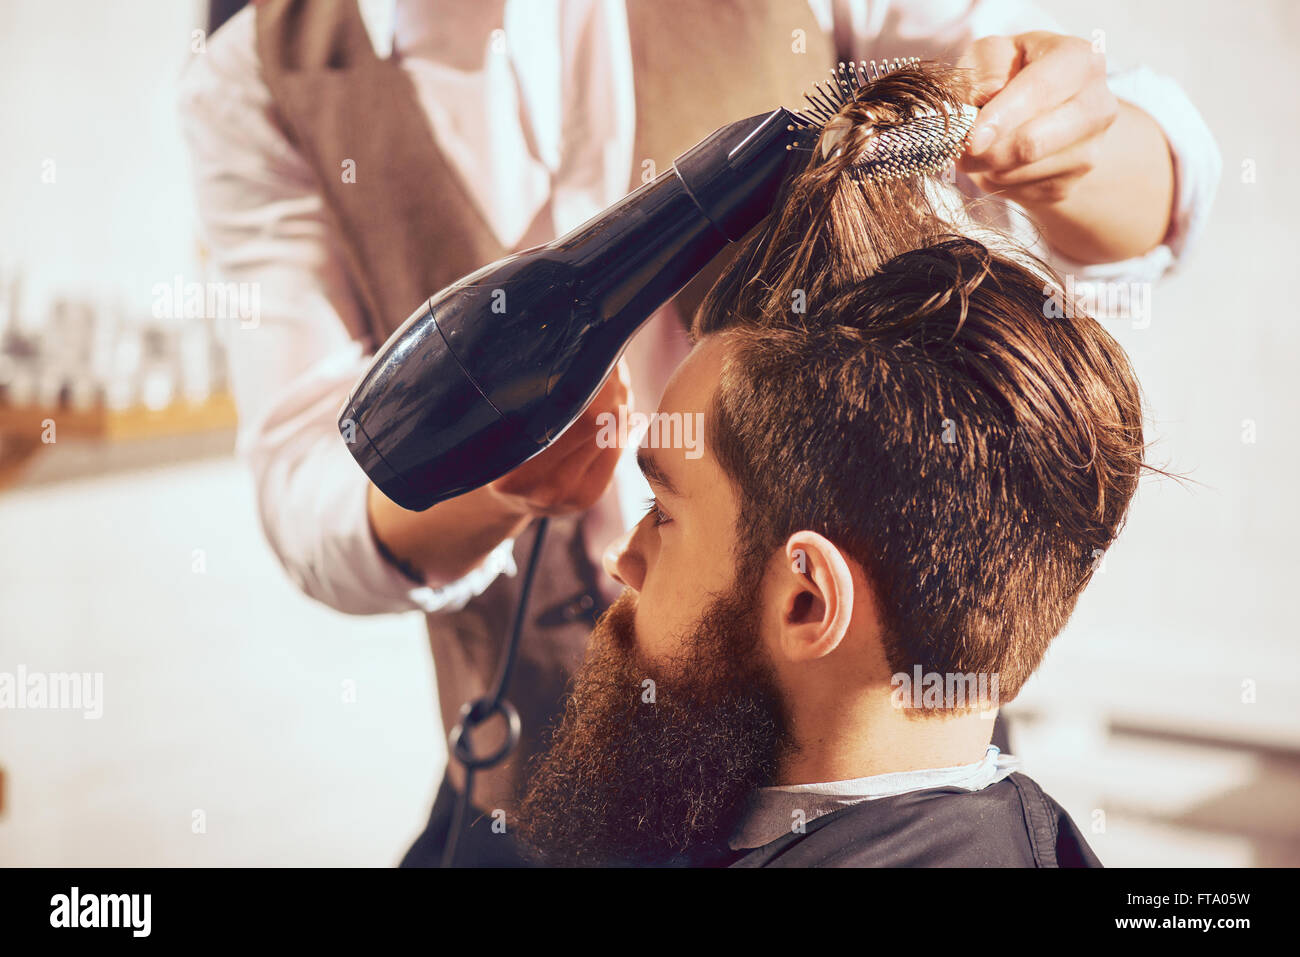 Professional barber drying hair of his client - Stock Image